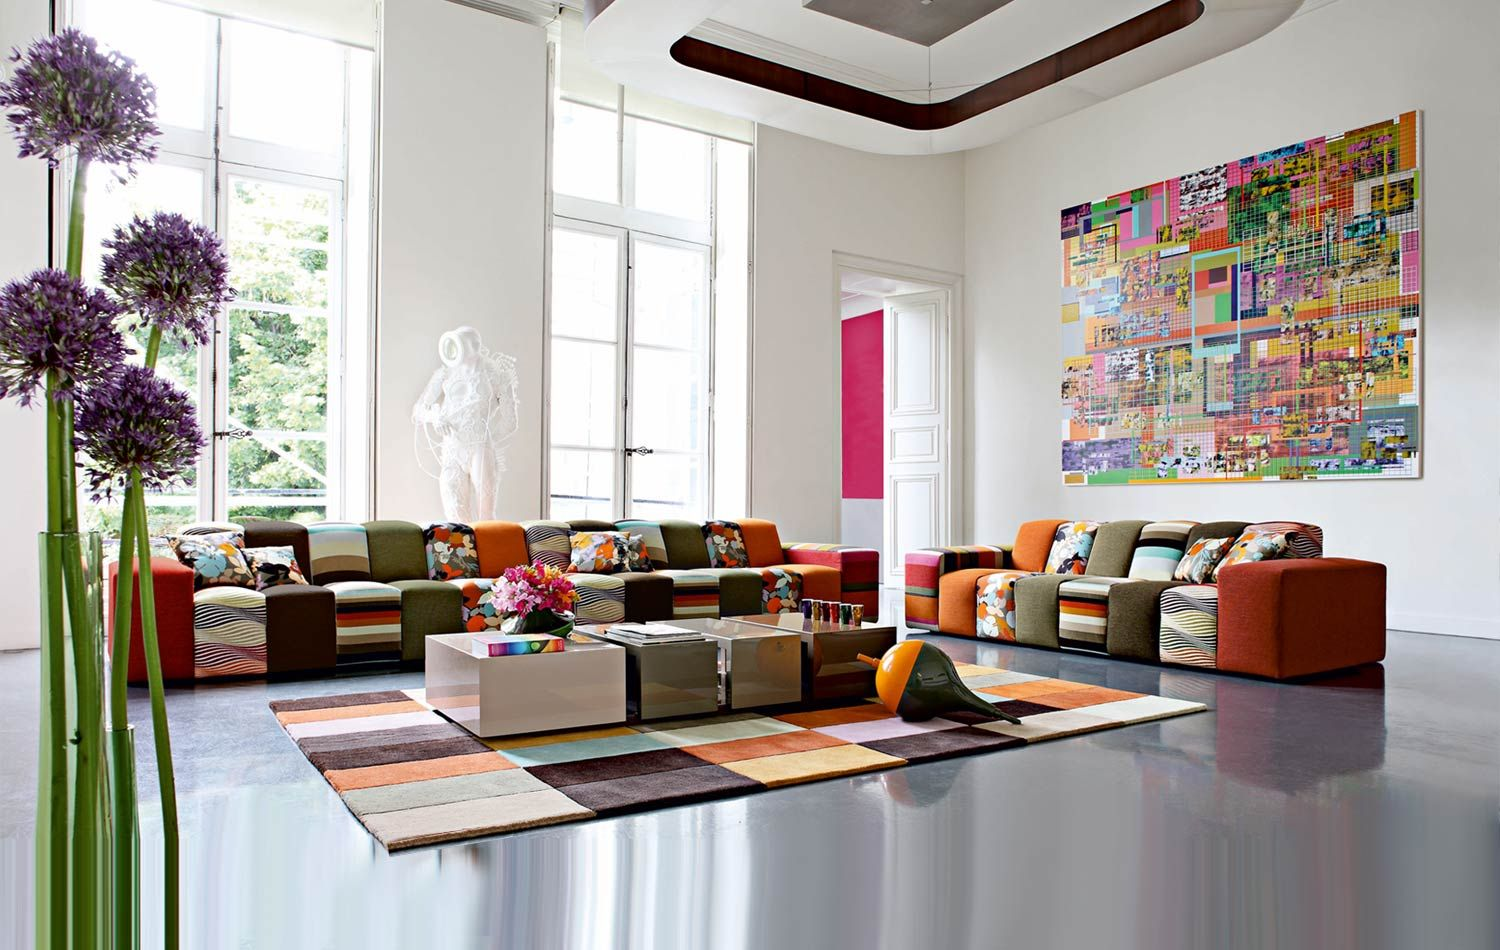 1000 images about canapes on pinterest modular sofa navy sofa and living rooms - Canape Colore